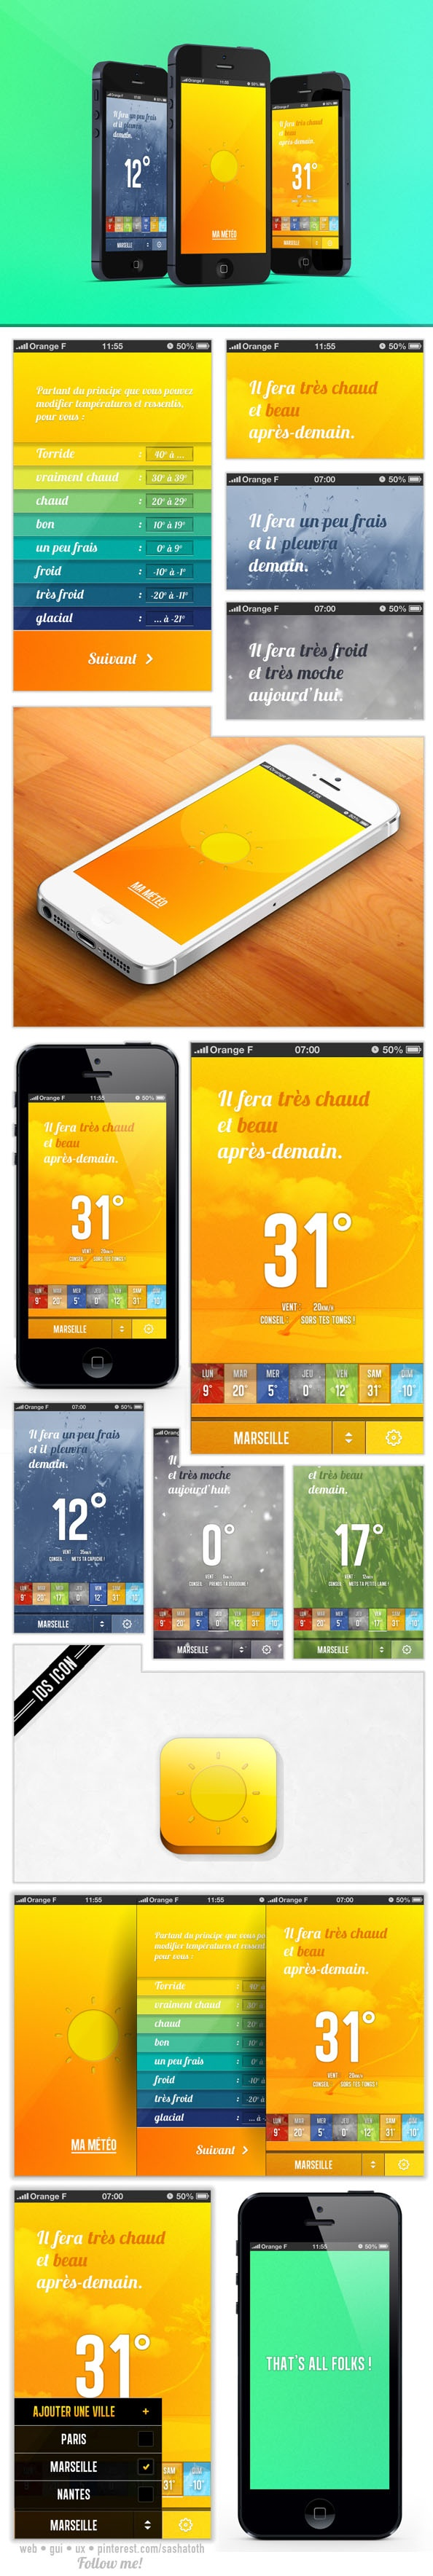 MaMétéo Weather App Concept by Ianis Soteras, via Behance #iphone #gui #weather #behance